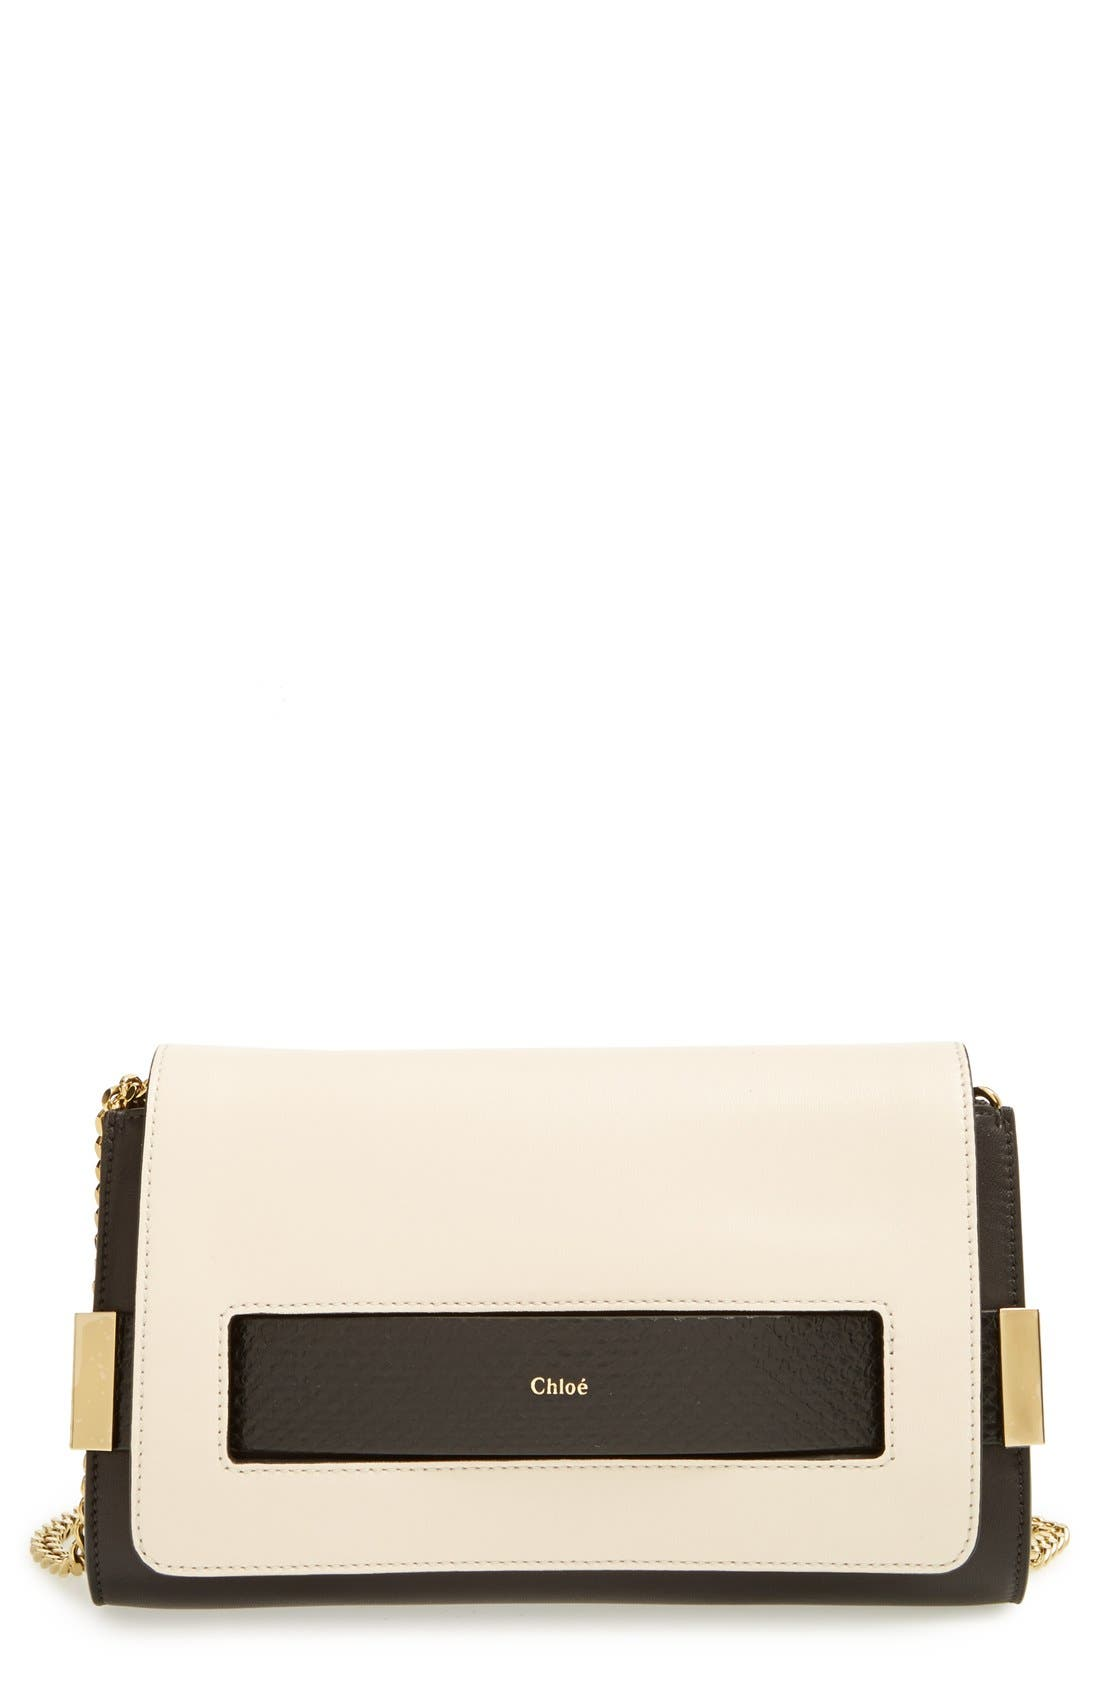 Alternate Image 1 Selected - Chloé 'Elle Ayers Medium' Clutch